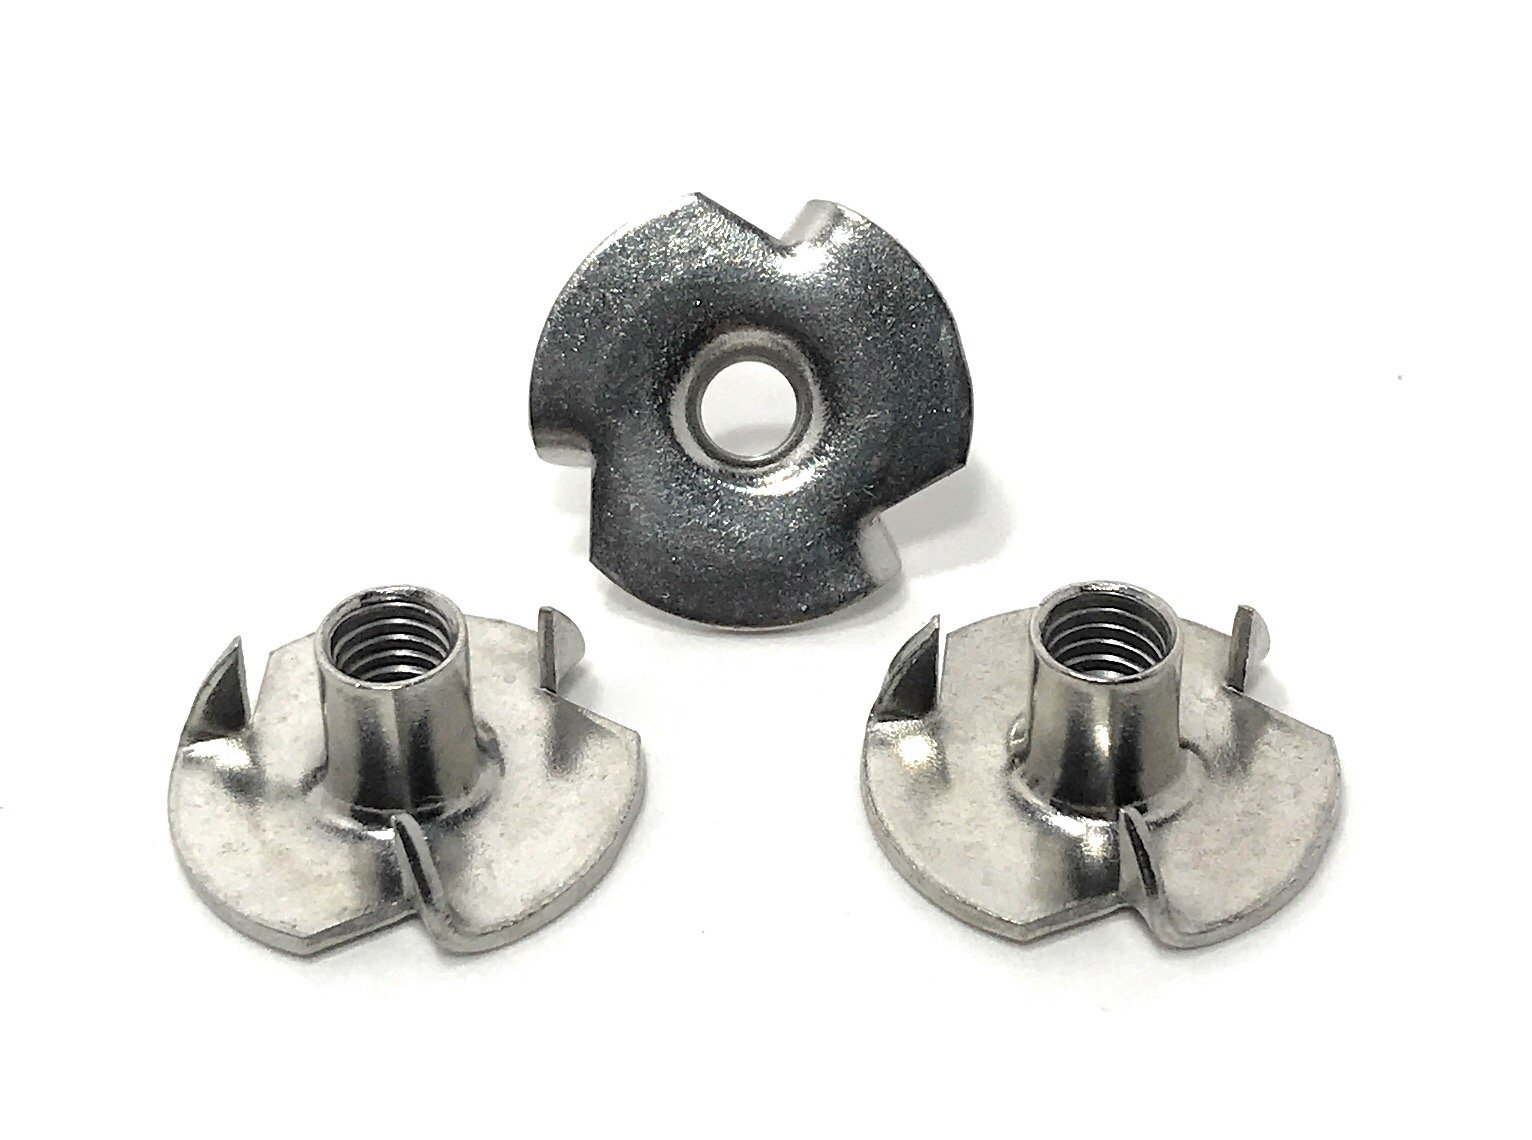 T-NUT Stainless Steel 10-32x9/32 (3 Prong) Tee Nuts (10-32 Thread 9/32 Barrel Length) 18-8 Stainless - (25) Pieces by Fastener Assembly Solutions